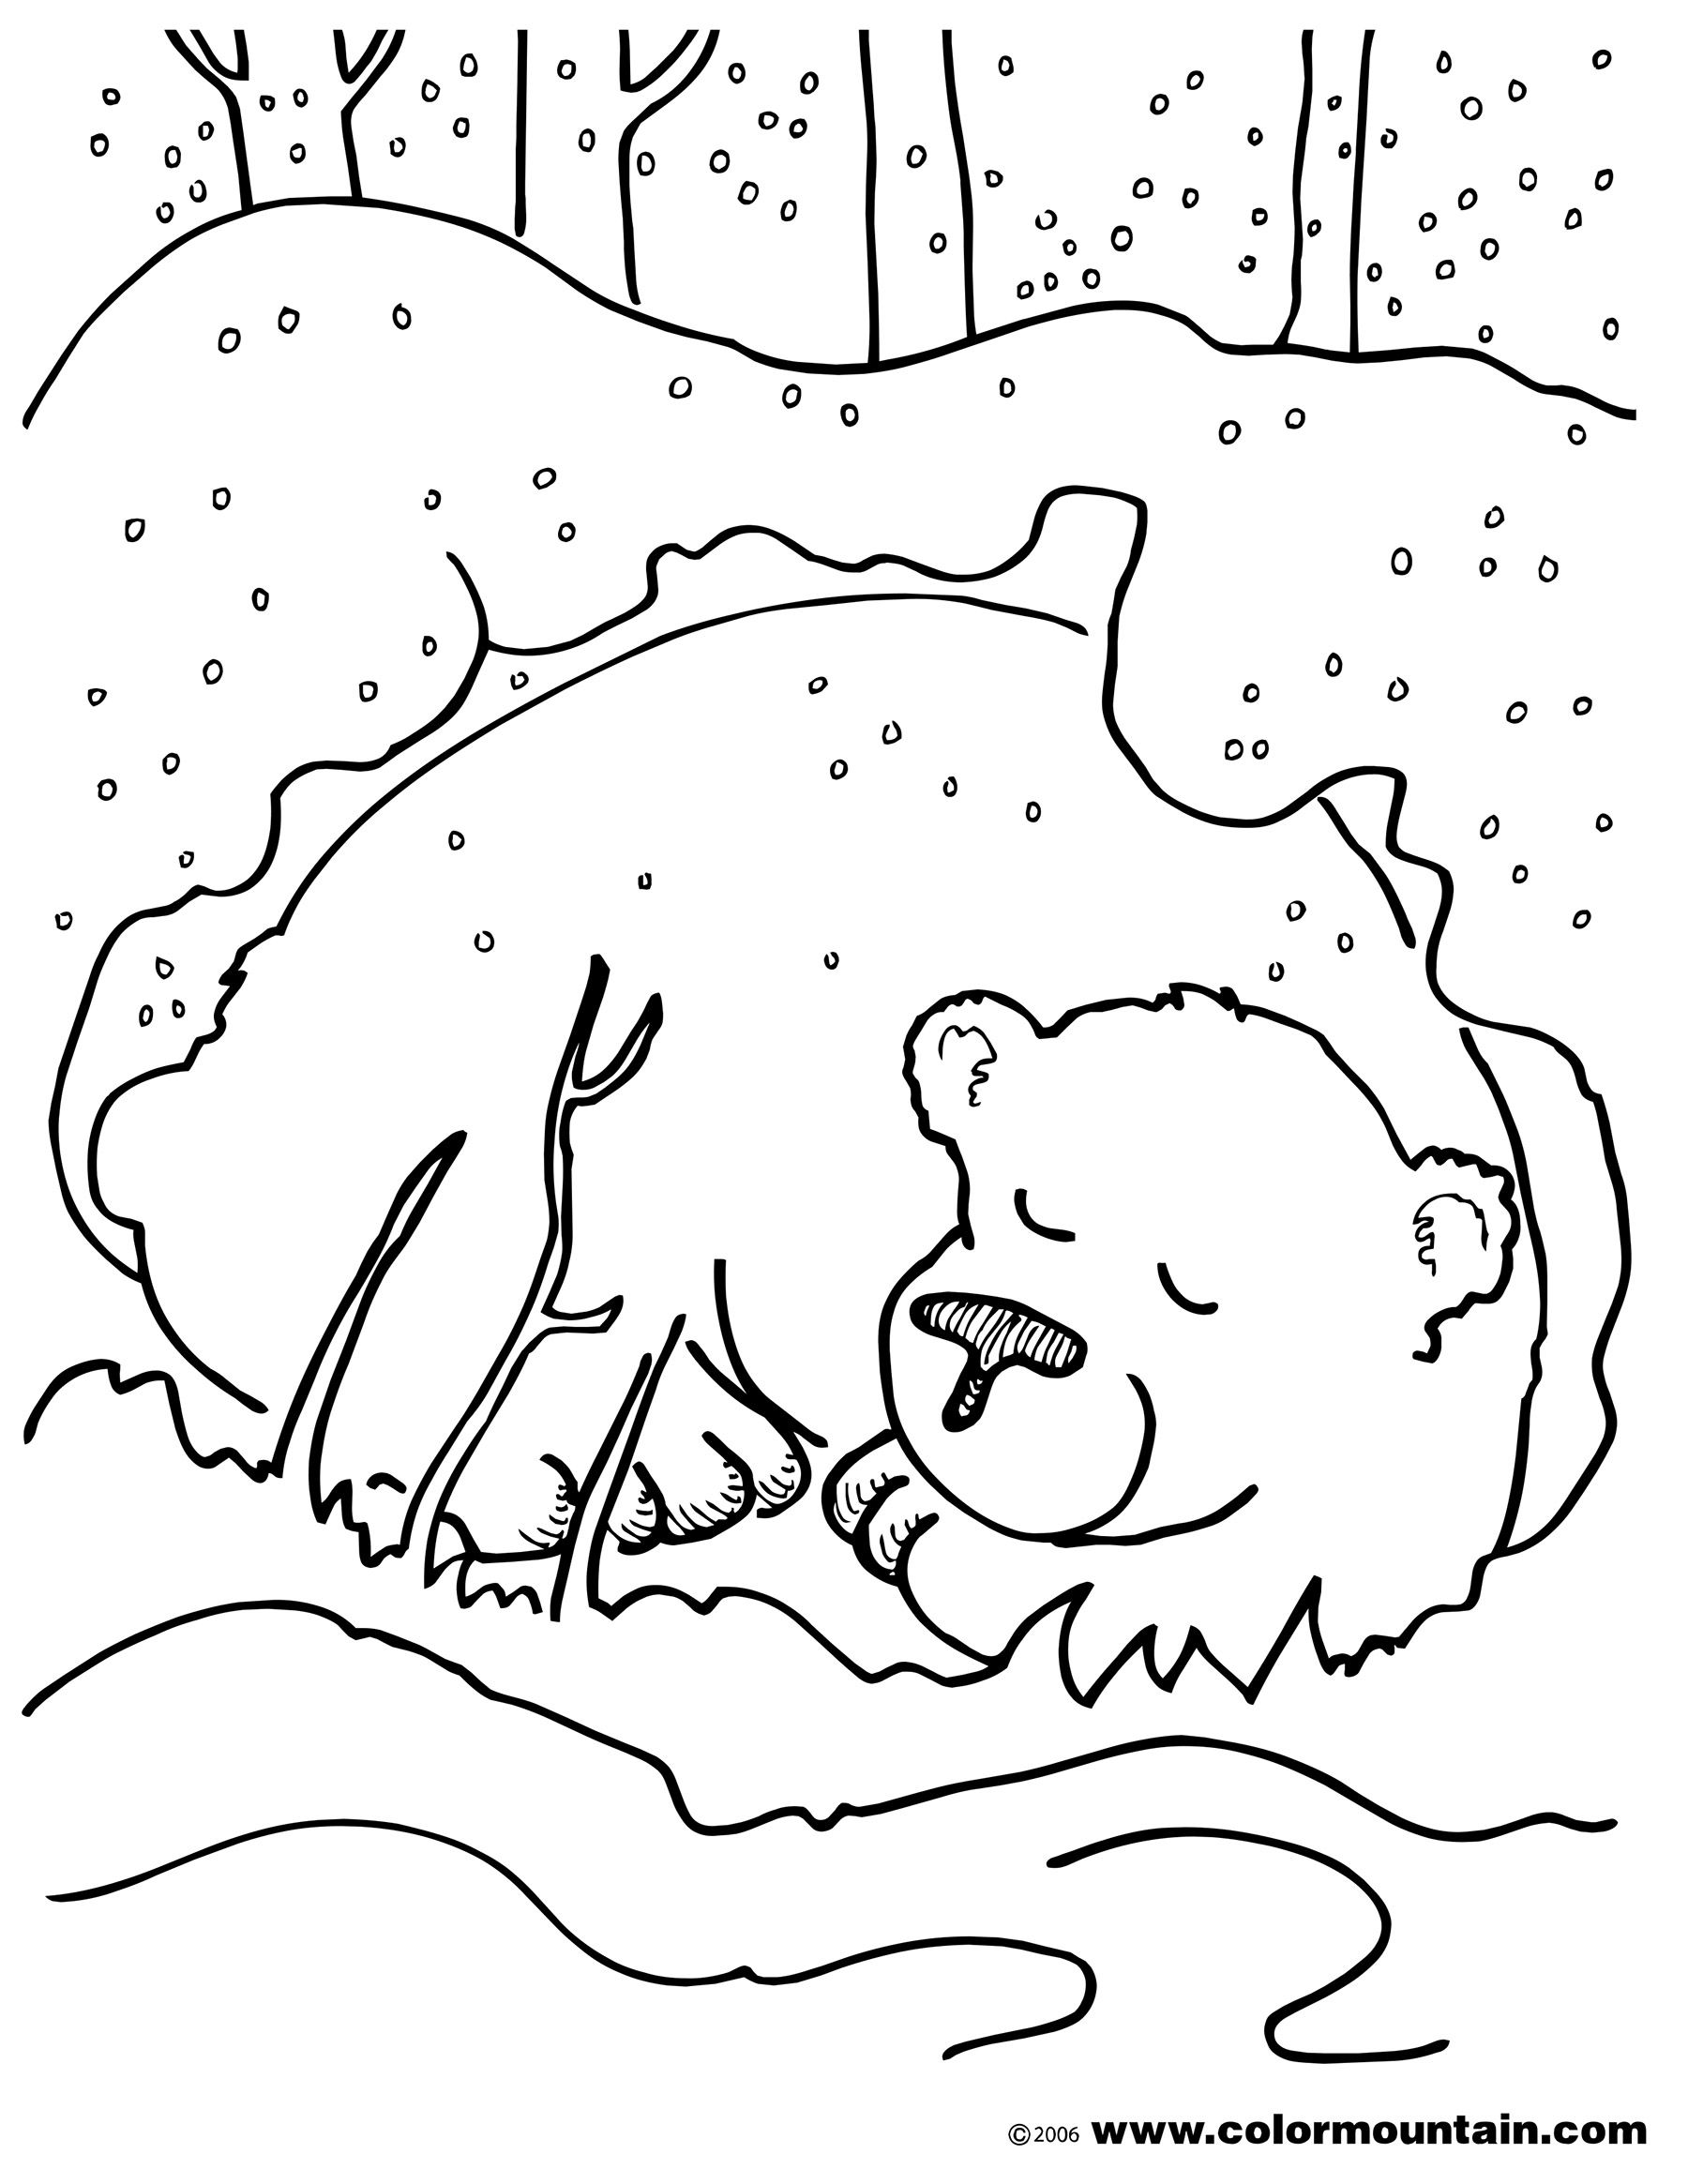 Colouring pages with colour - Hibernating Bear Color Sheet Coloring Page